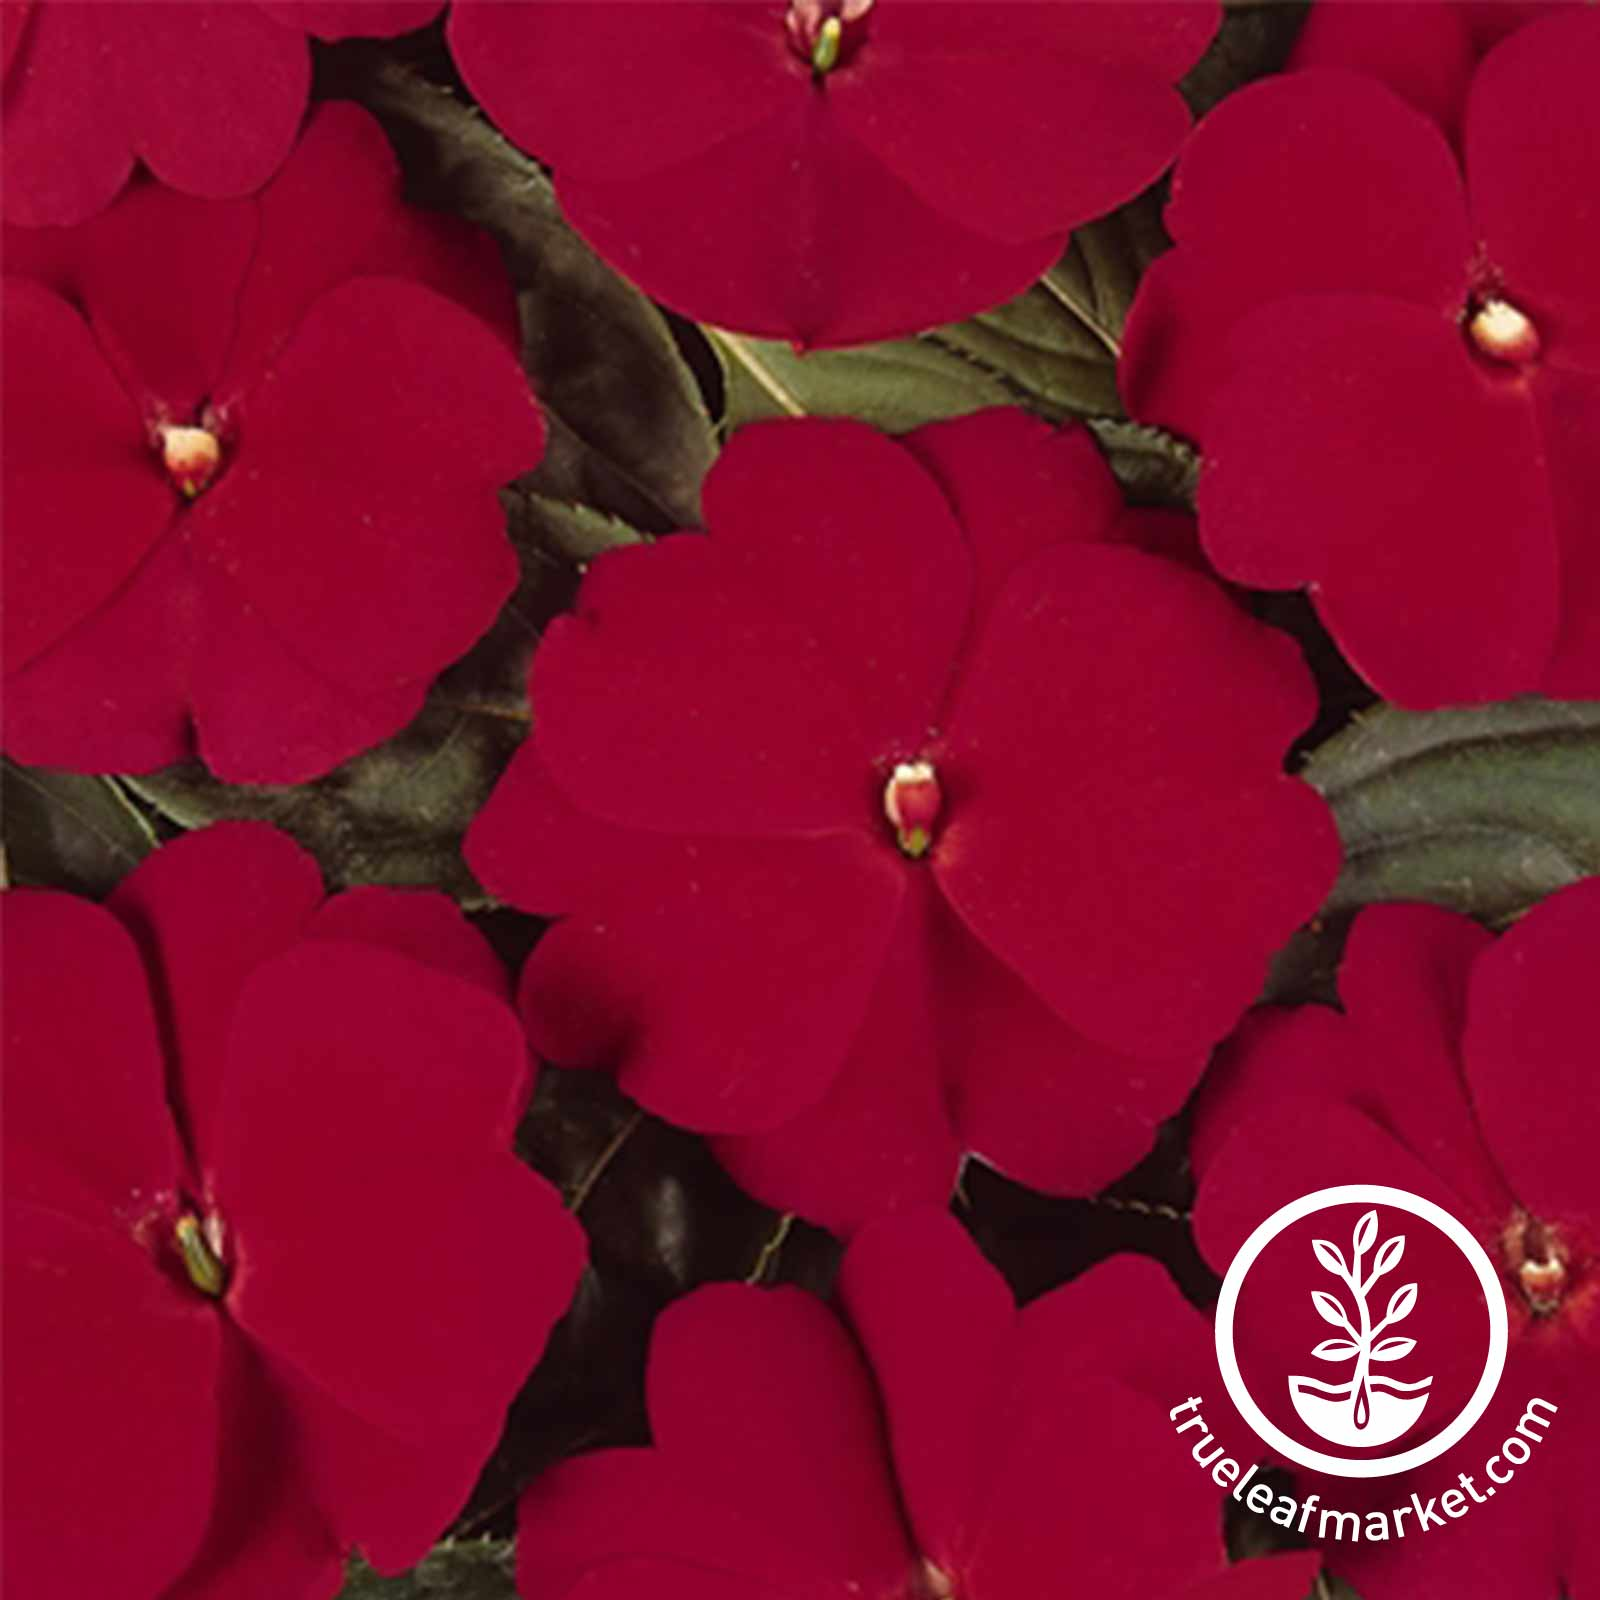 Impatiens New Guinea Divine Series Cherry Red Seed